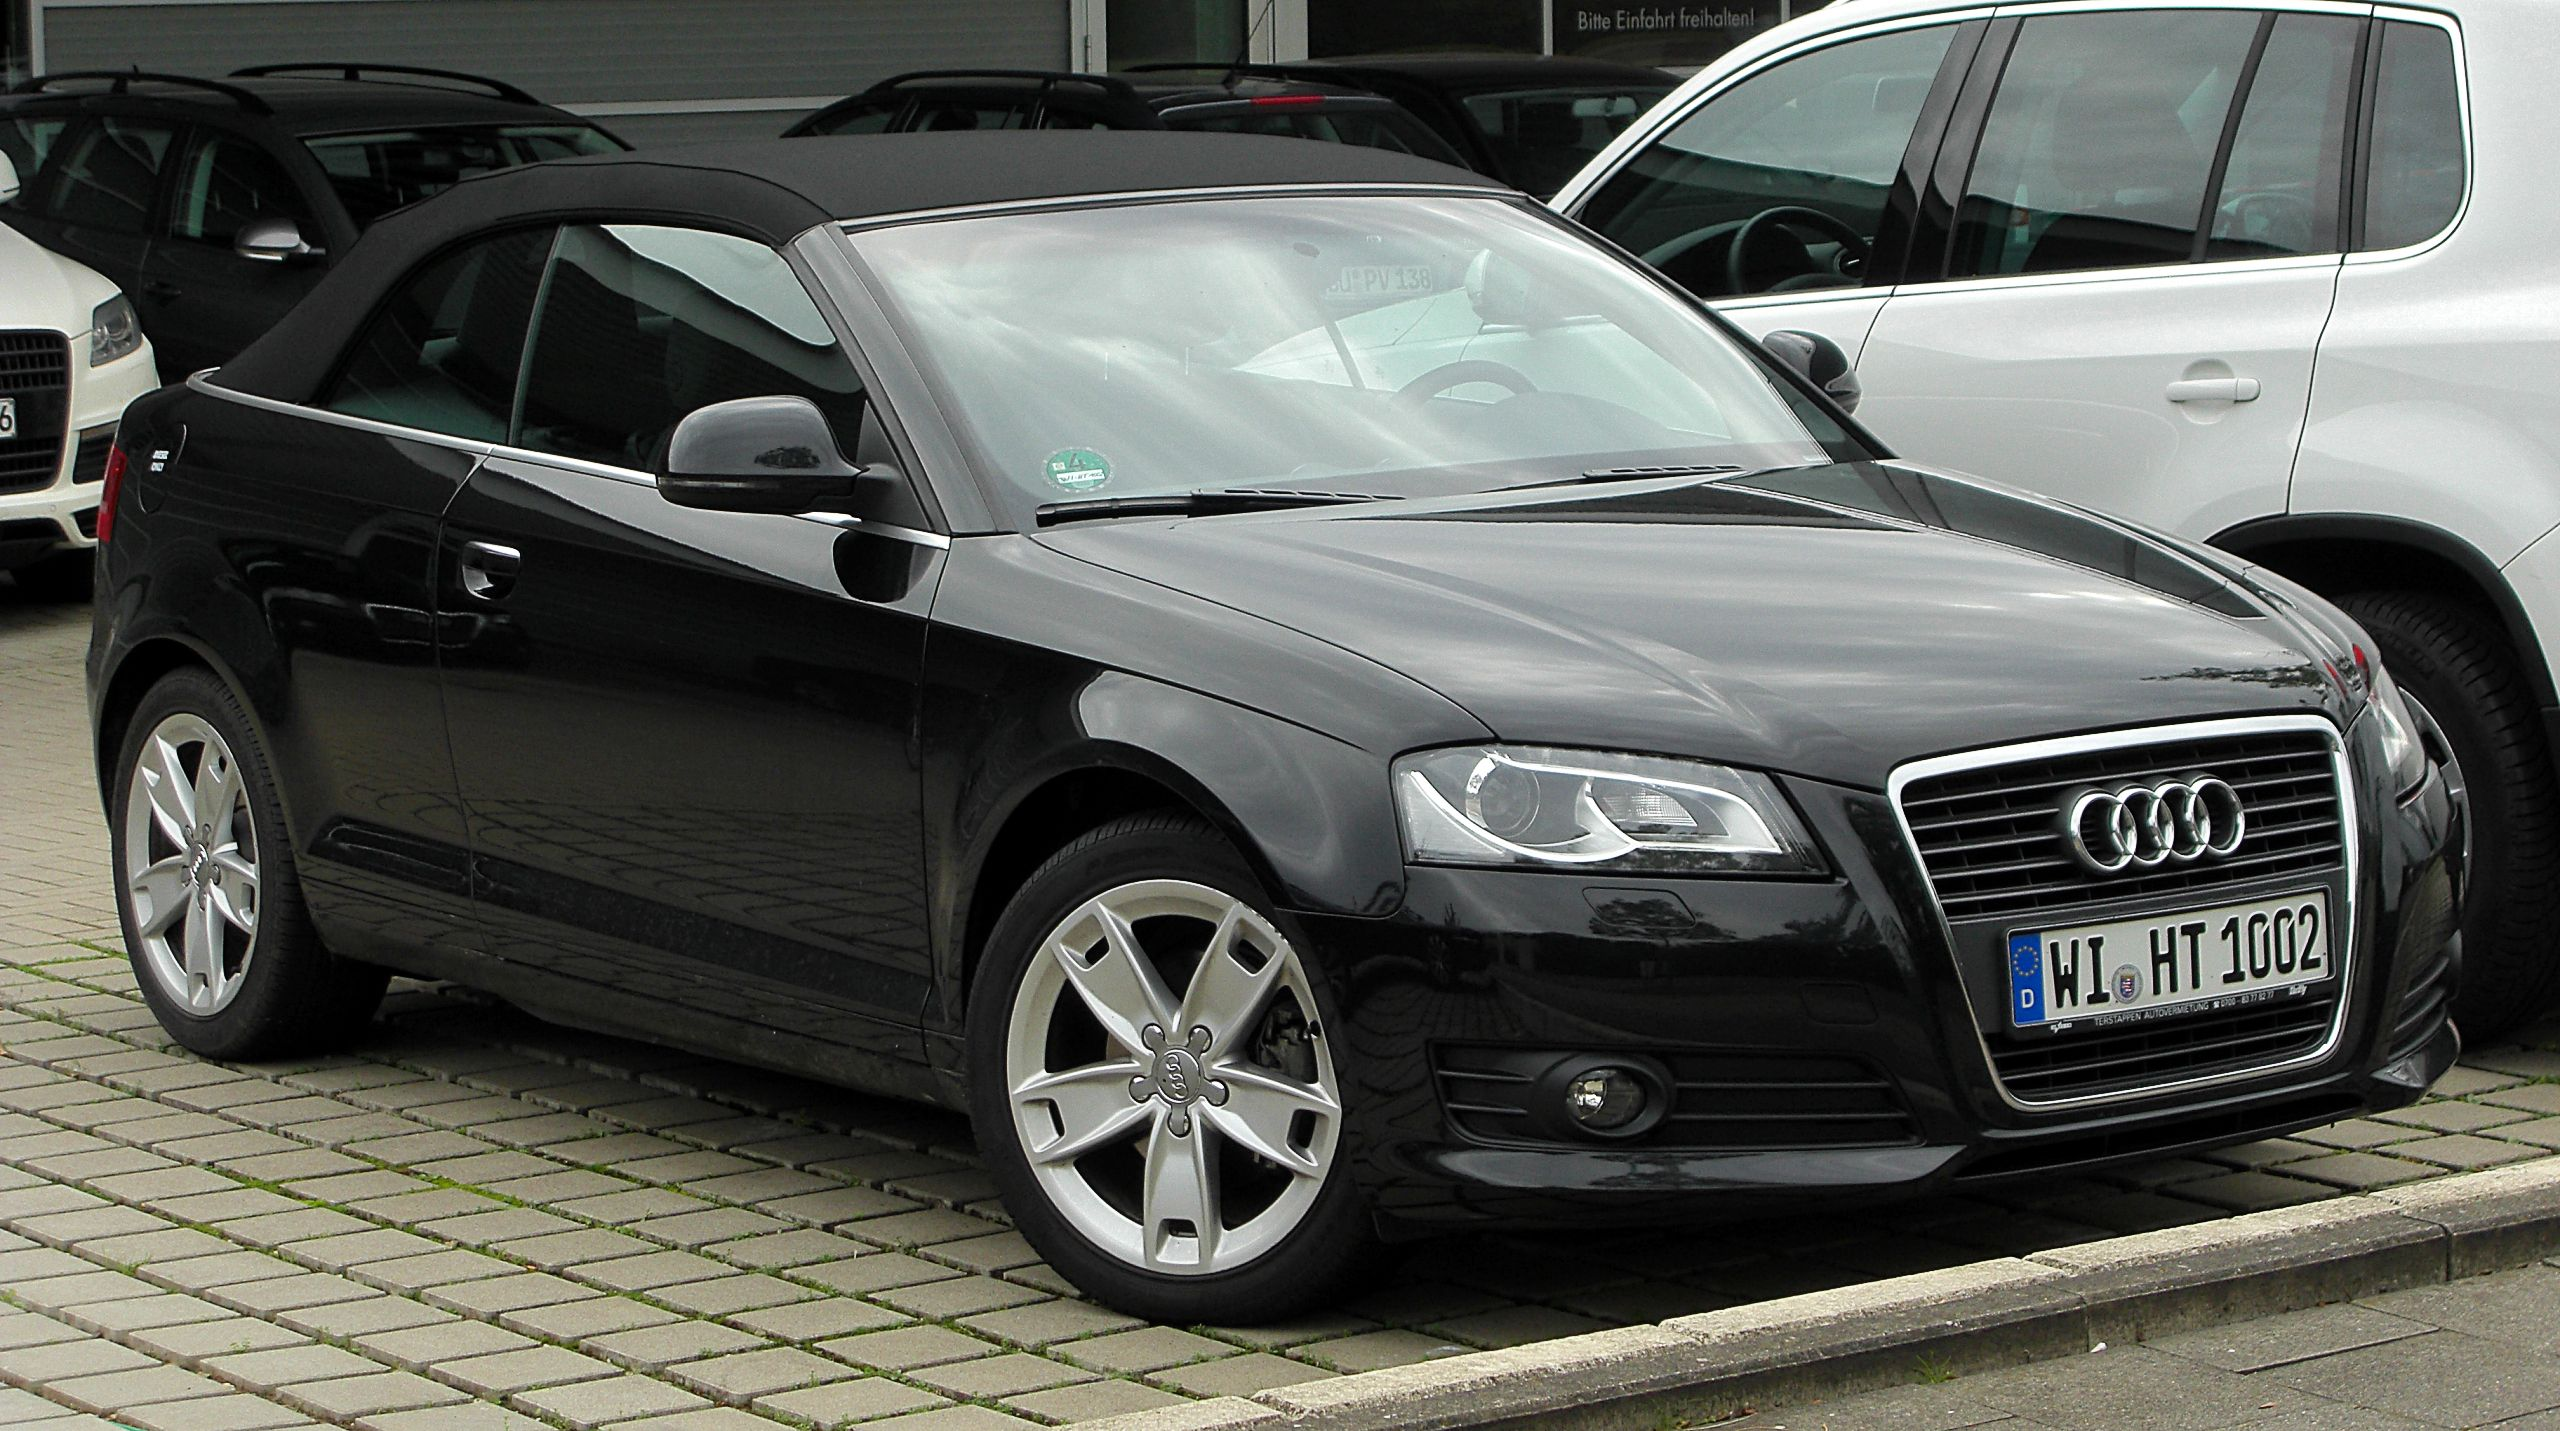 Audi 3 convertable audi a3 convertible black picture wallpaper audi